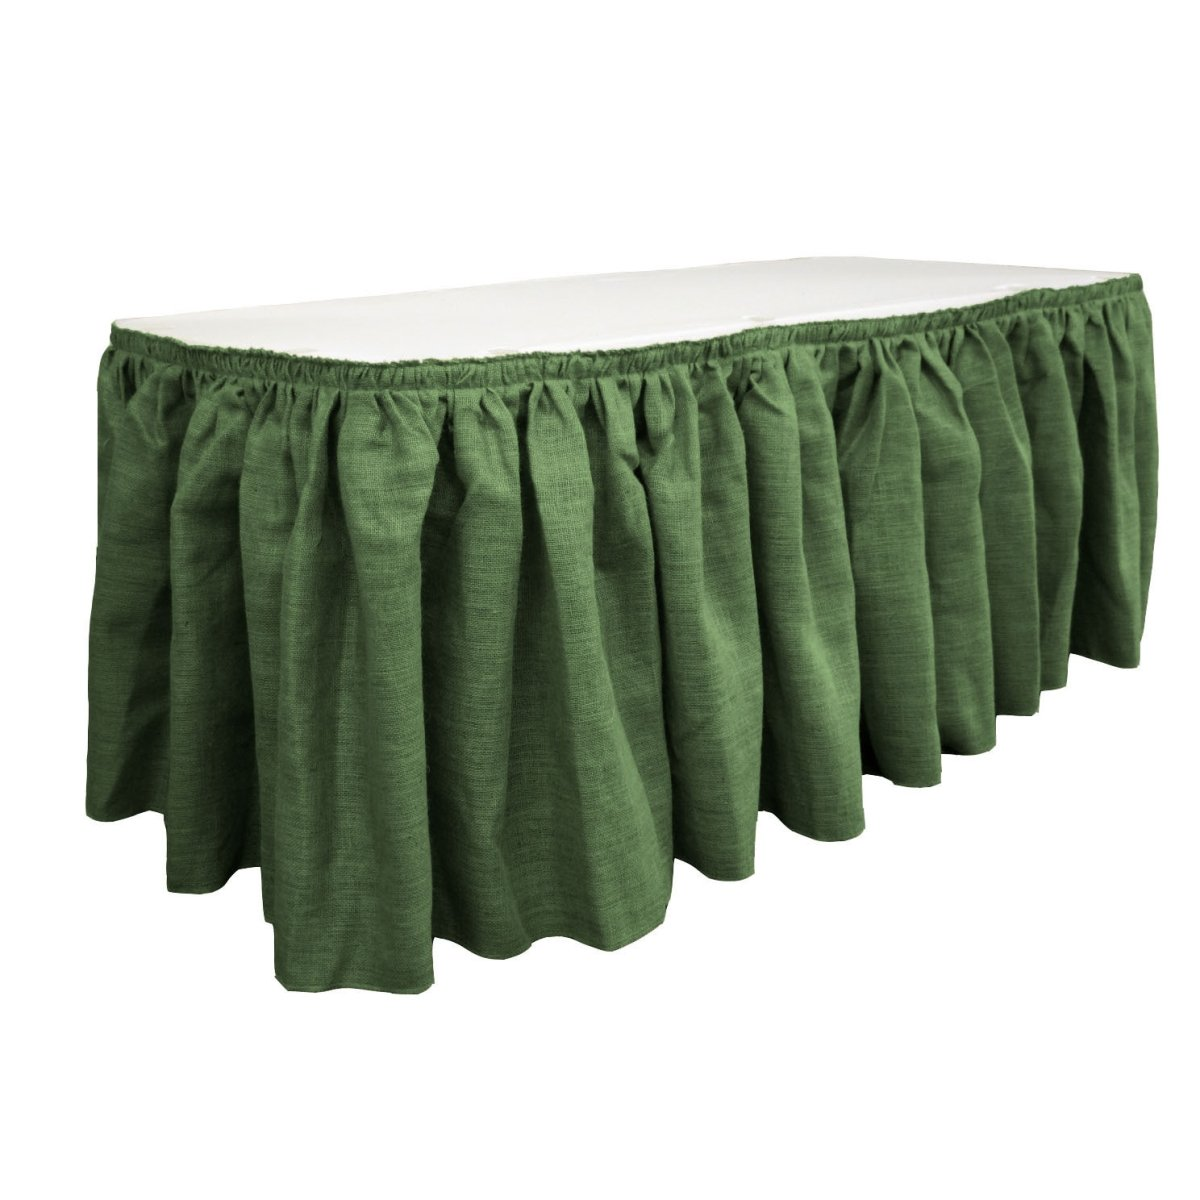 LA Linen SkirtBurlap17x29-10Lclips-GreenHunter Burlap Table Skirt with 10 L-Clips44; Hunter Green - 17 ft. x 29 in. by LA Linen (Image #1)